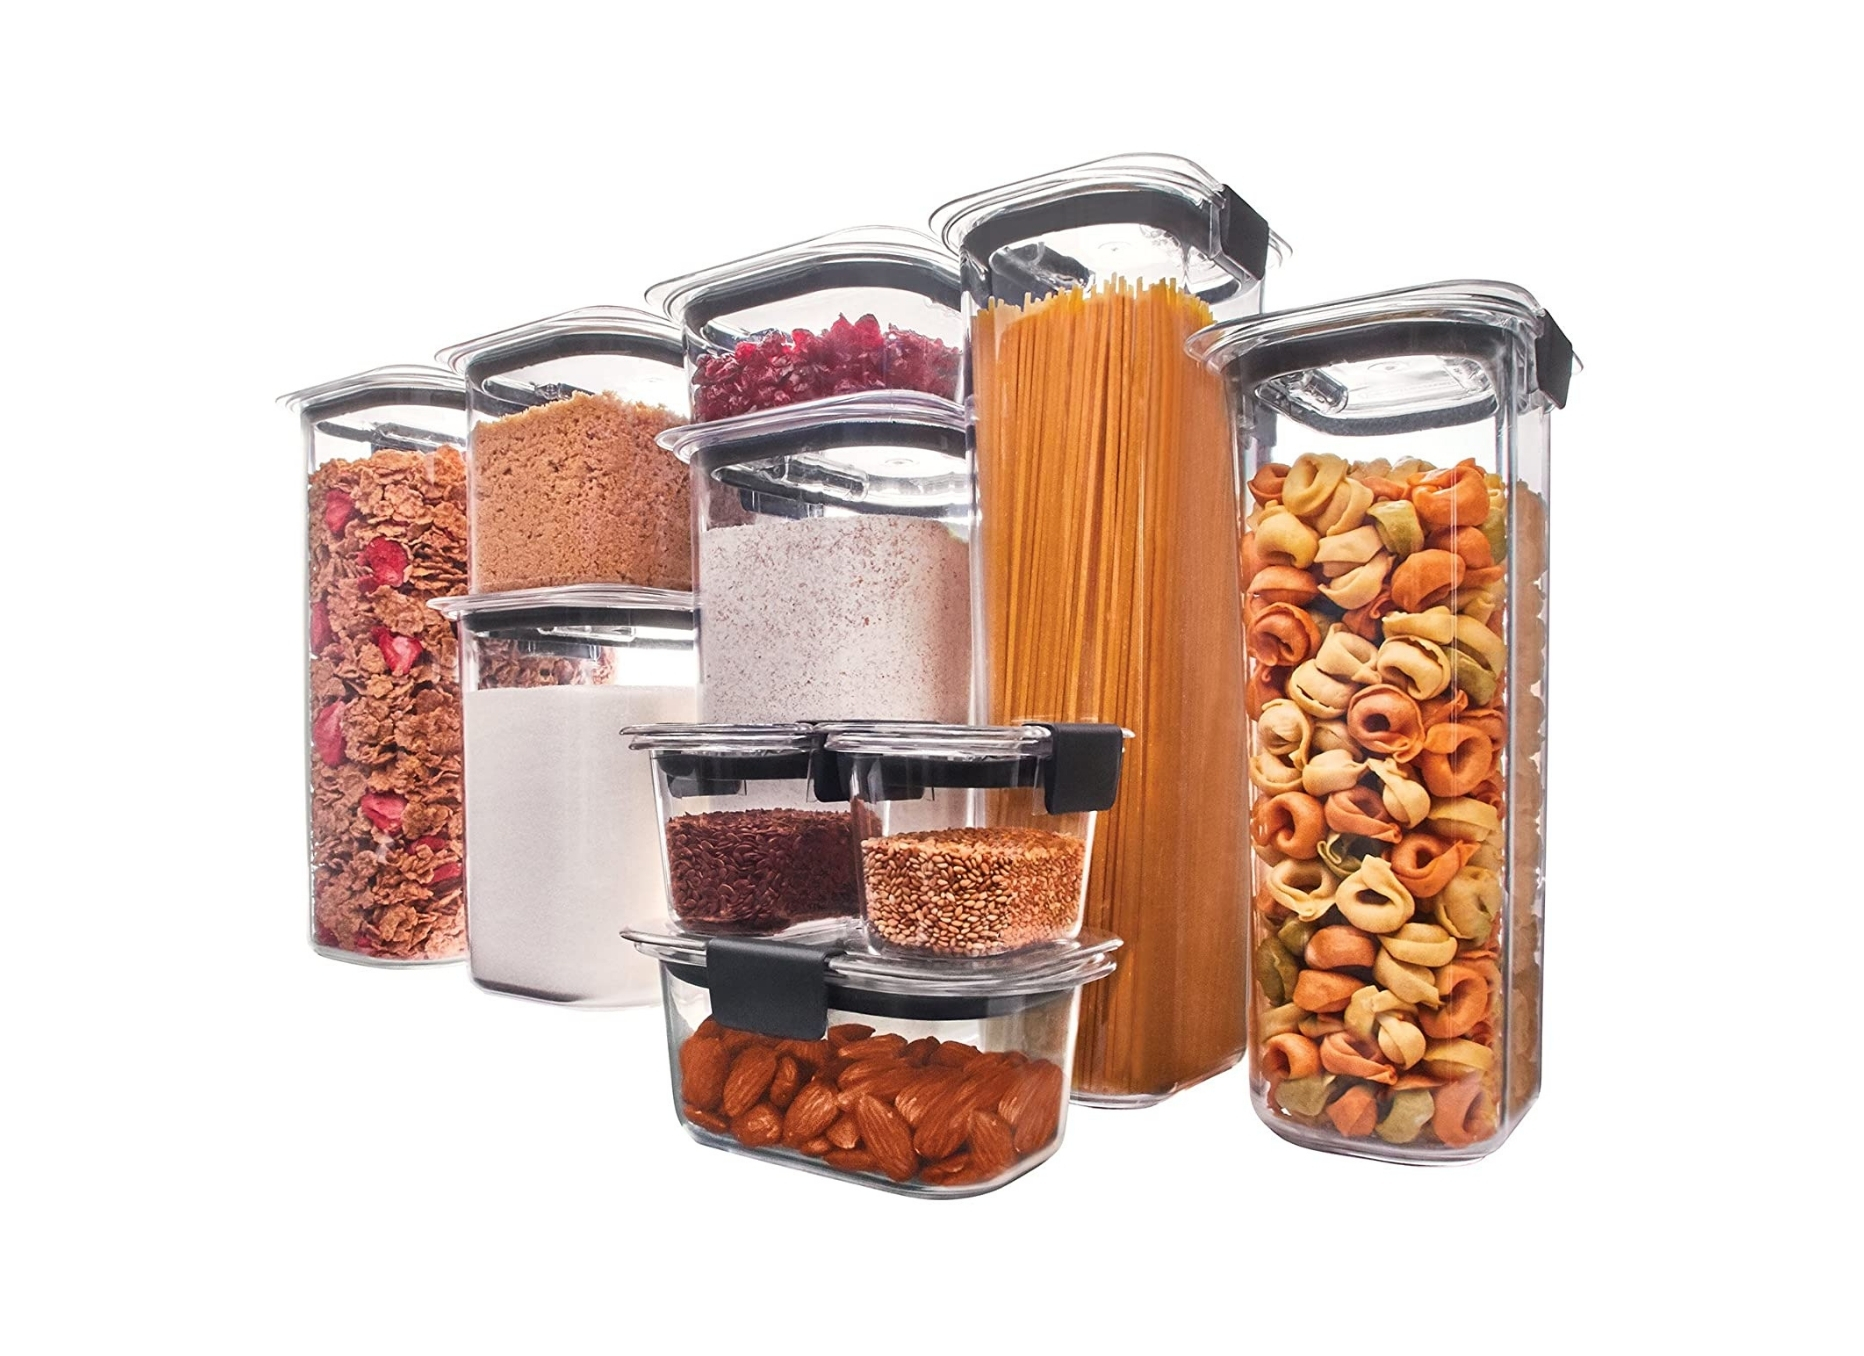 Rubbermaid Brilliance System